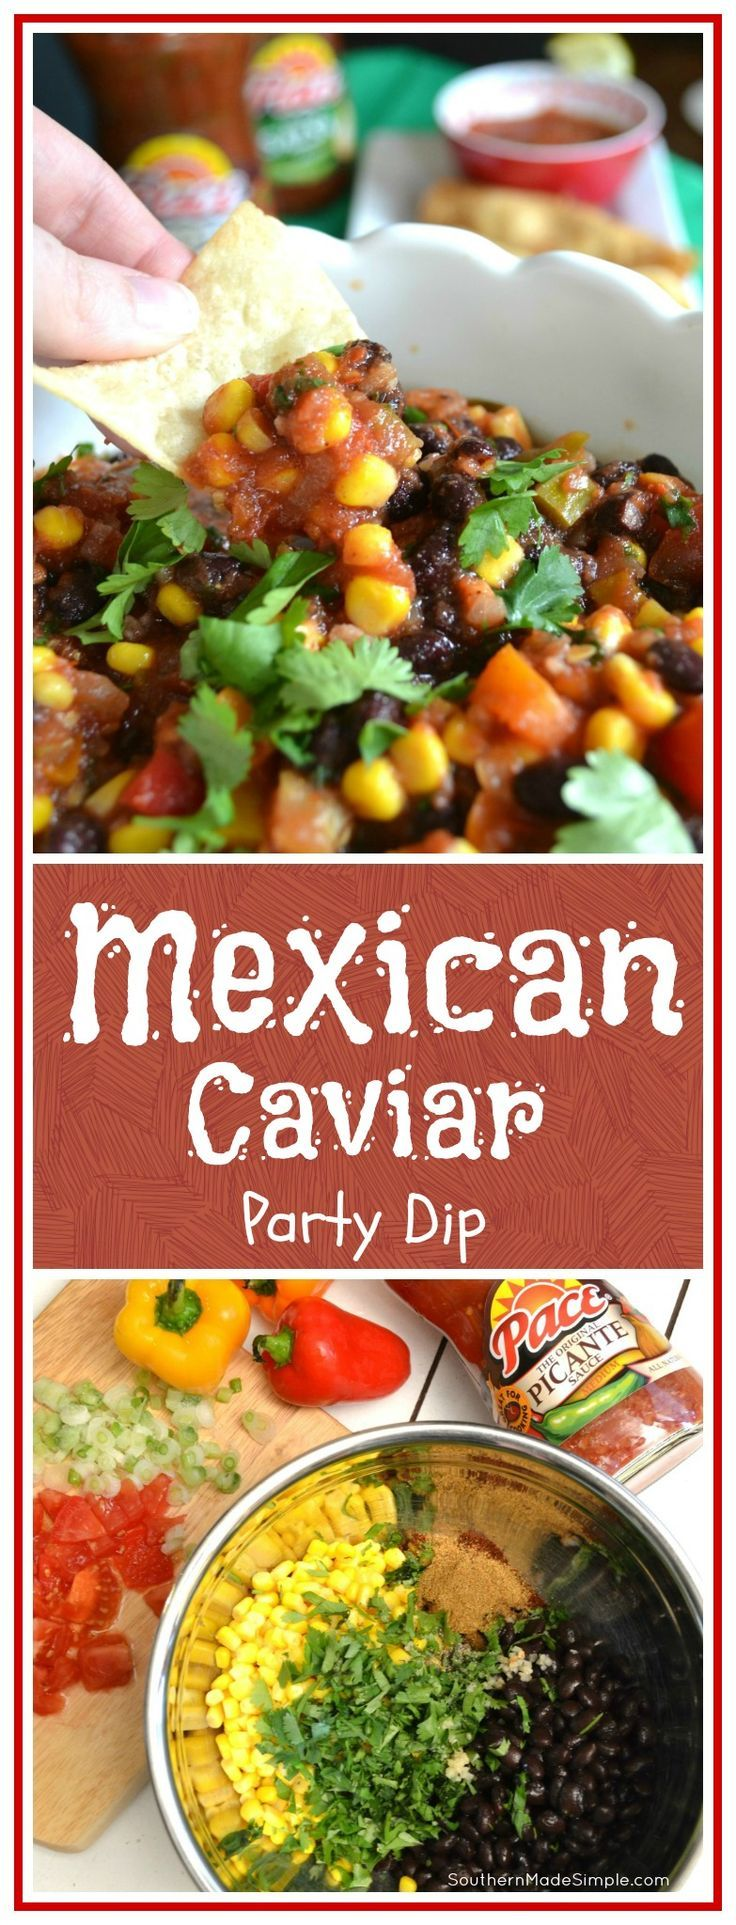 If you're looking to spice up your game day dip, you'll definitely want to try this Mexican Caviar dip! It comes together in minutes and it's SO delish!